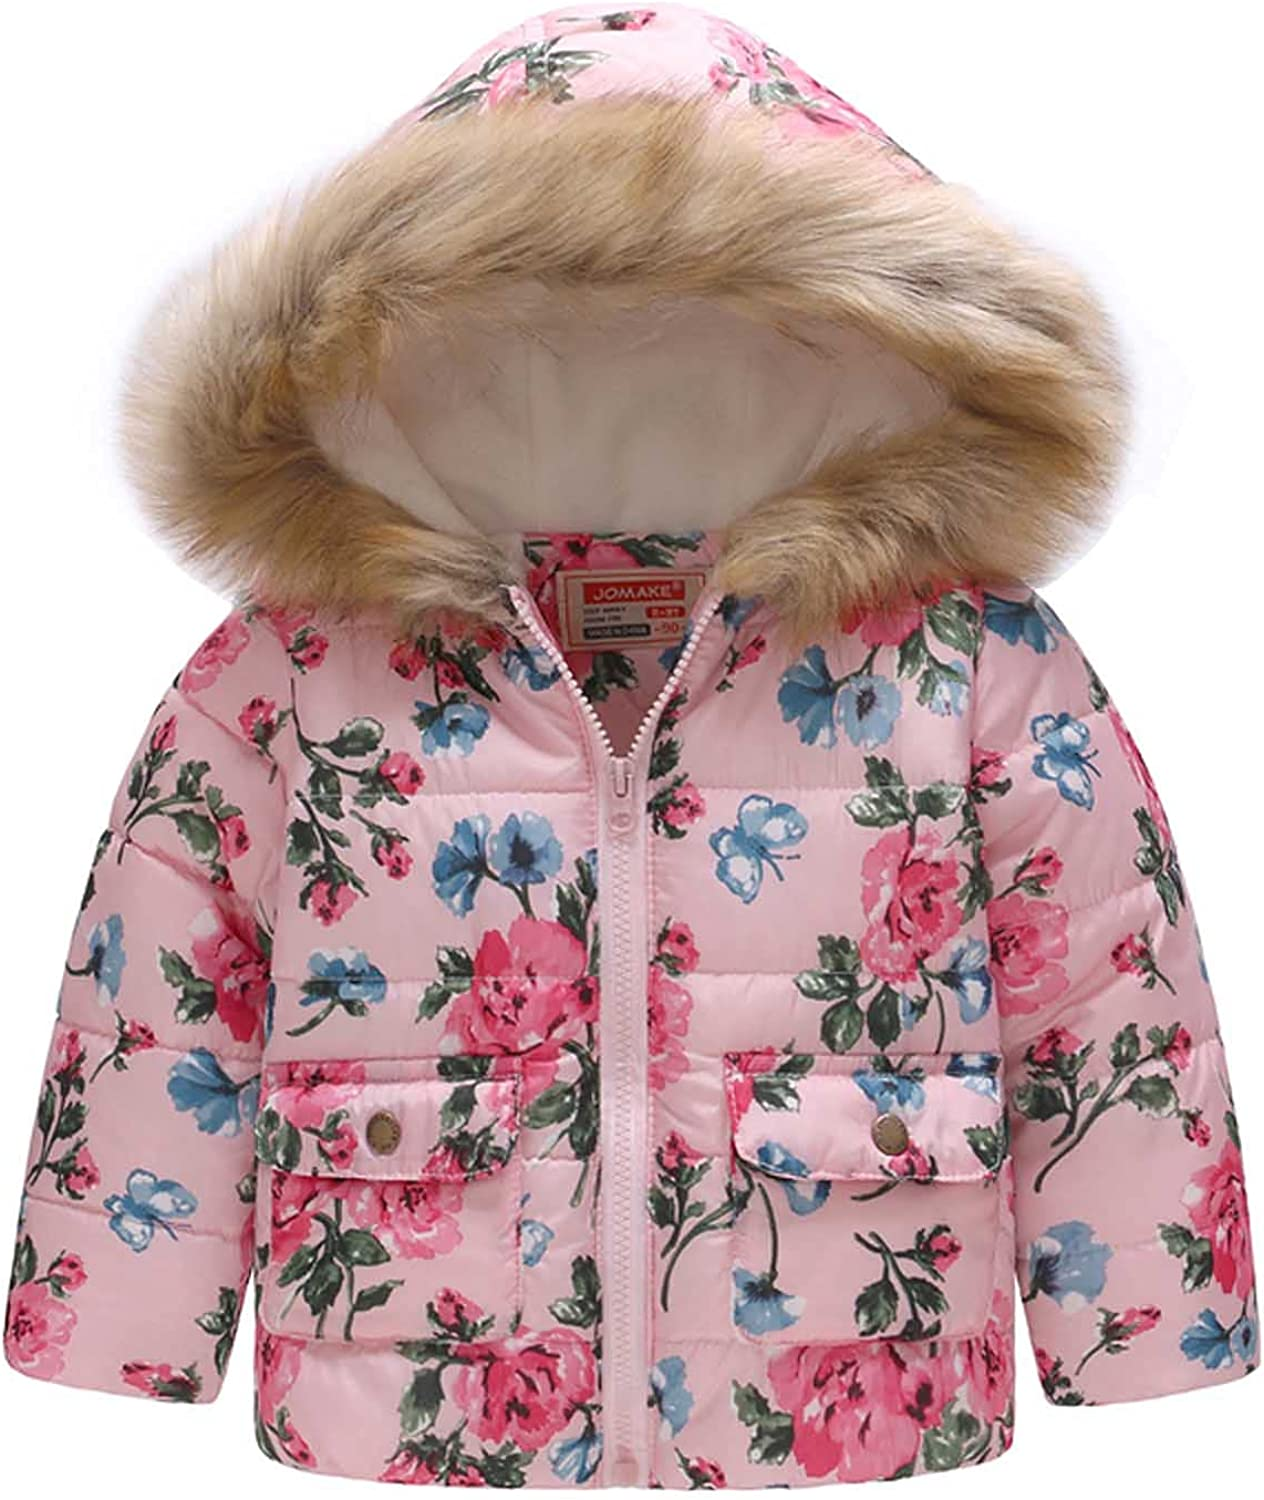 online shopping Cute Kids Coat Boys Girls Winter Thick Padded Clothe Sale Special Price Jacket